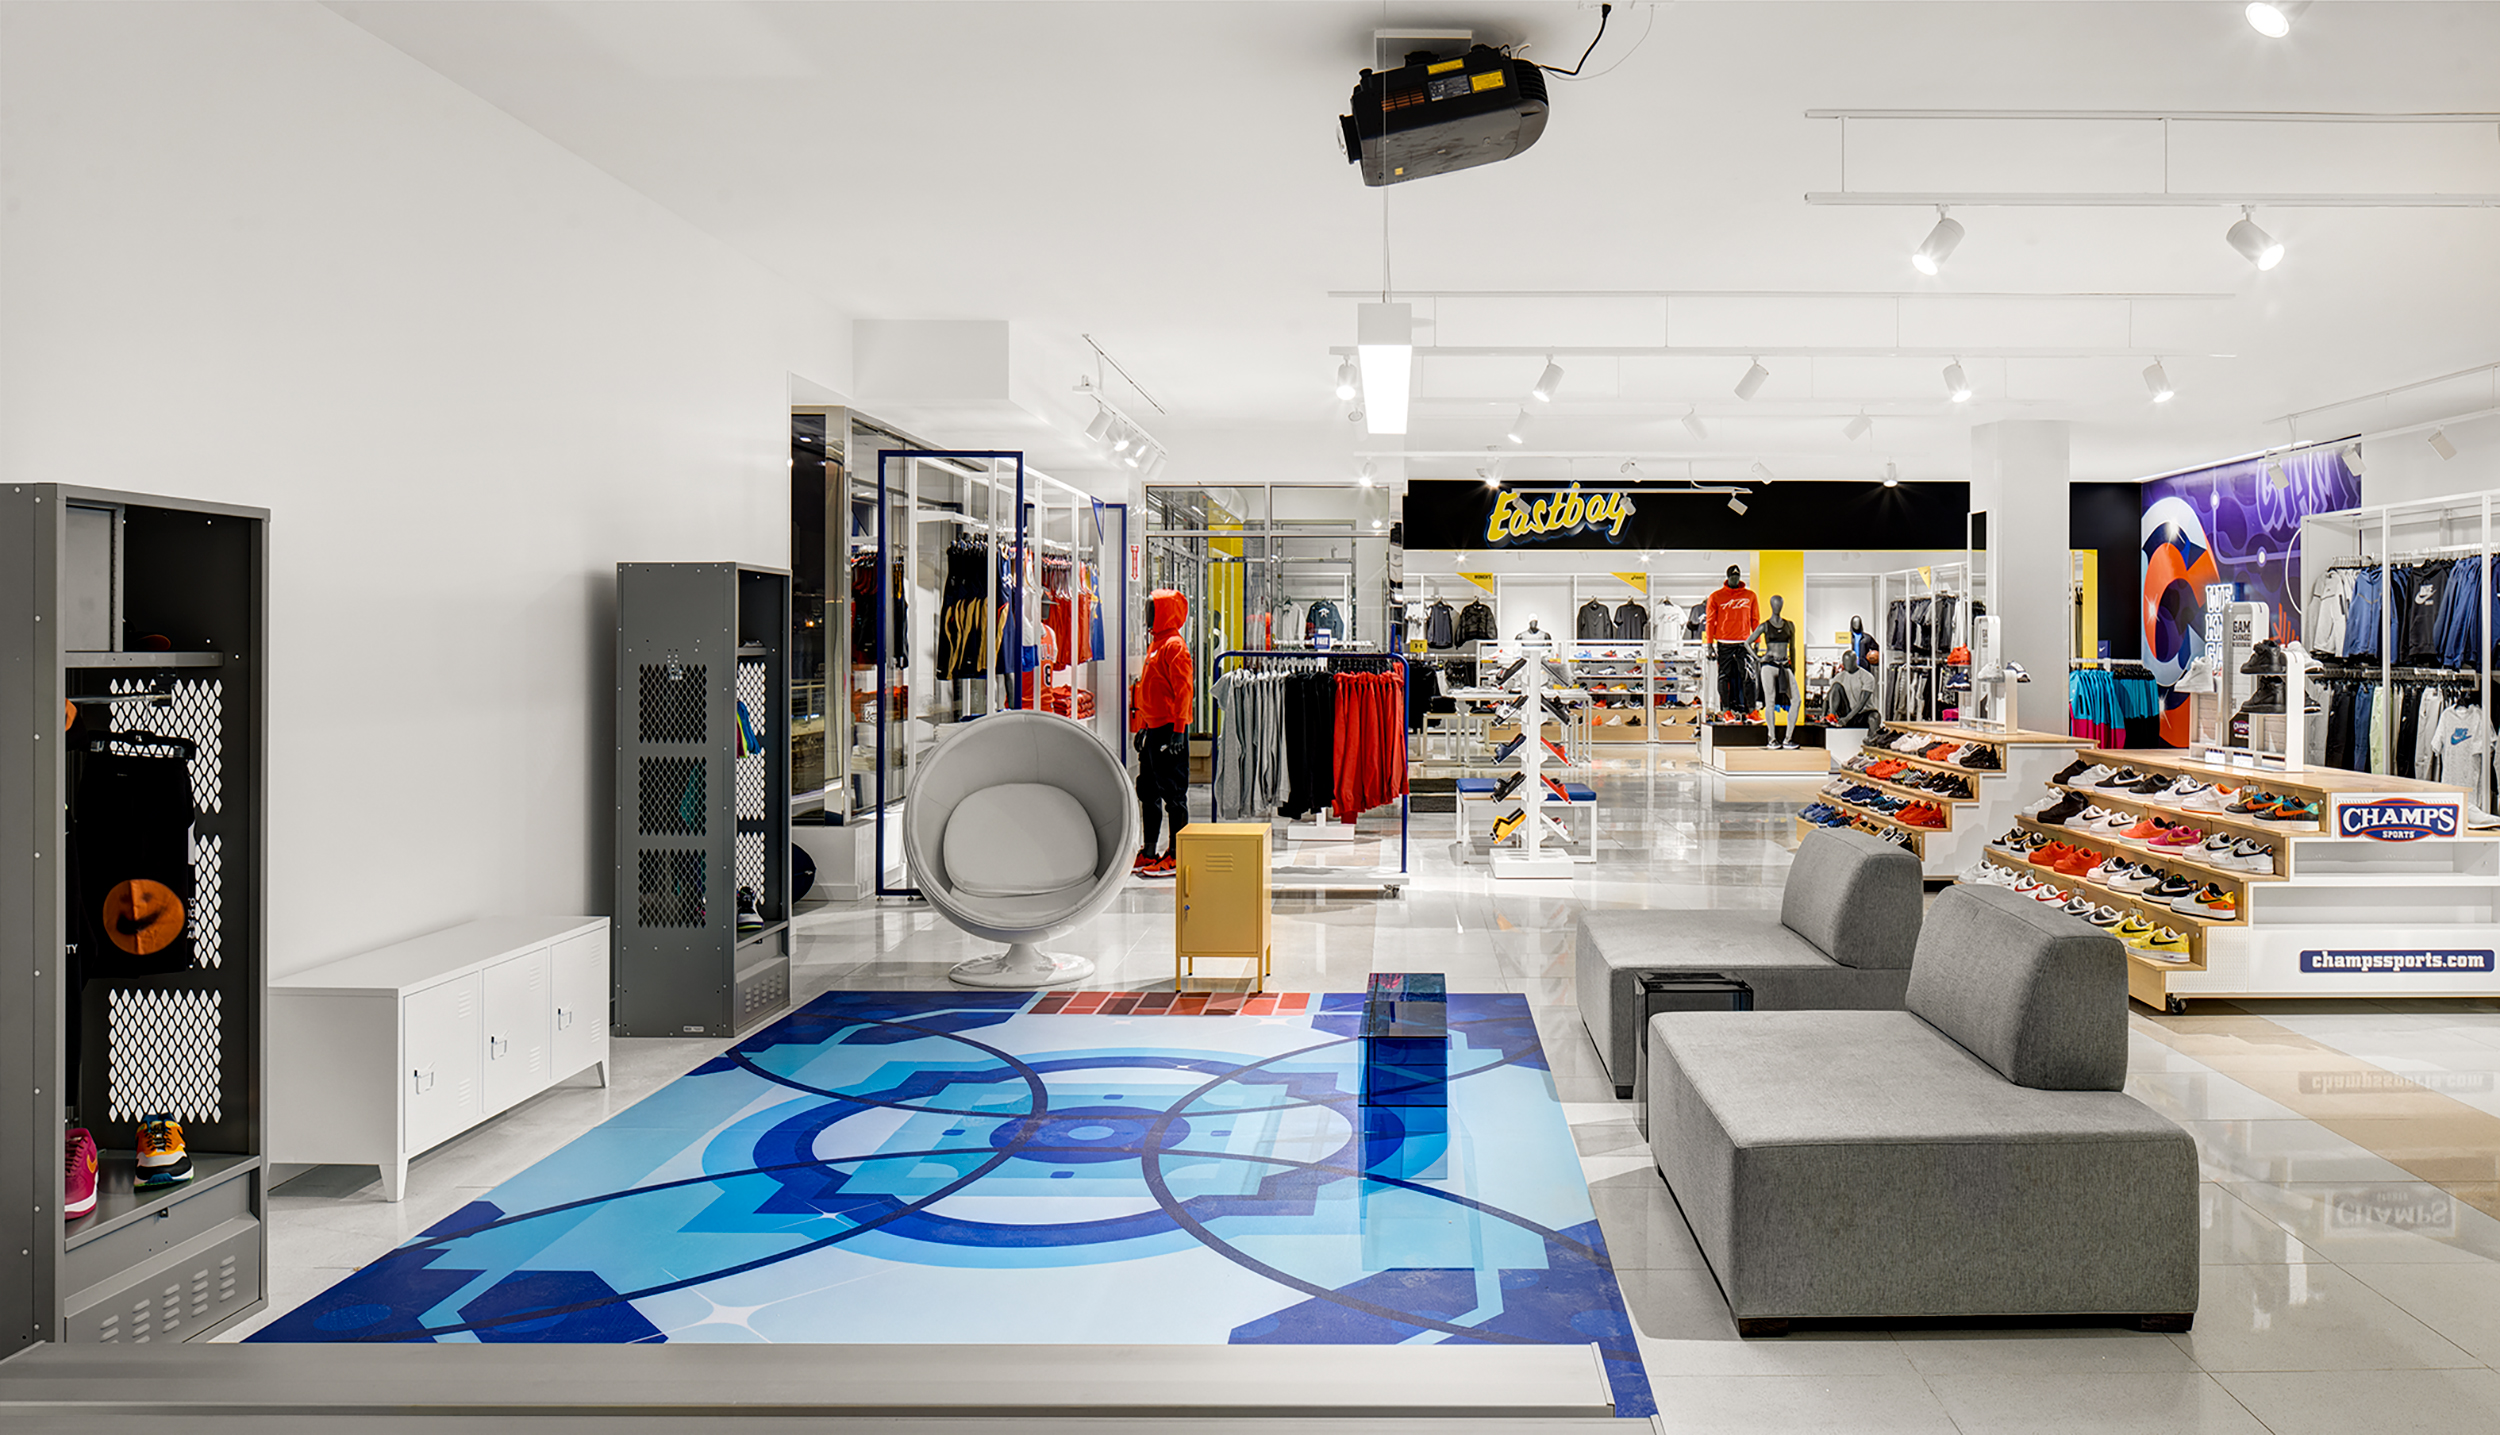 Encompassing 21,000 square feet, this new outpost houses Footlocker's Eastbay brand's first physical experience.